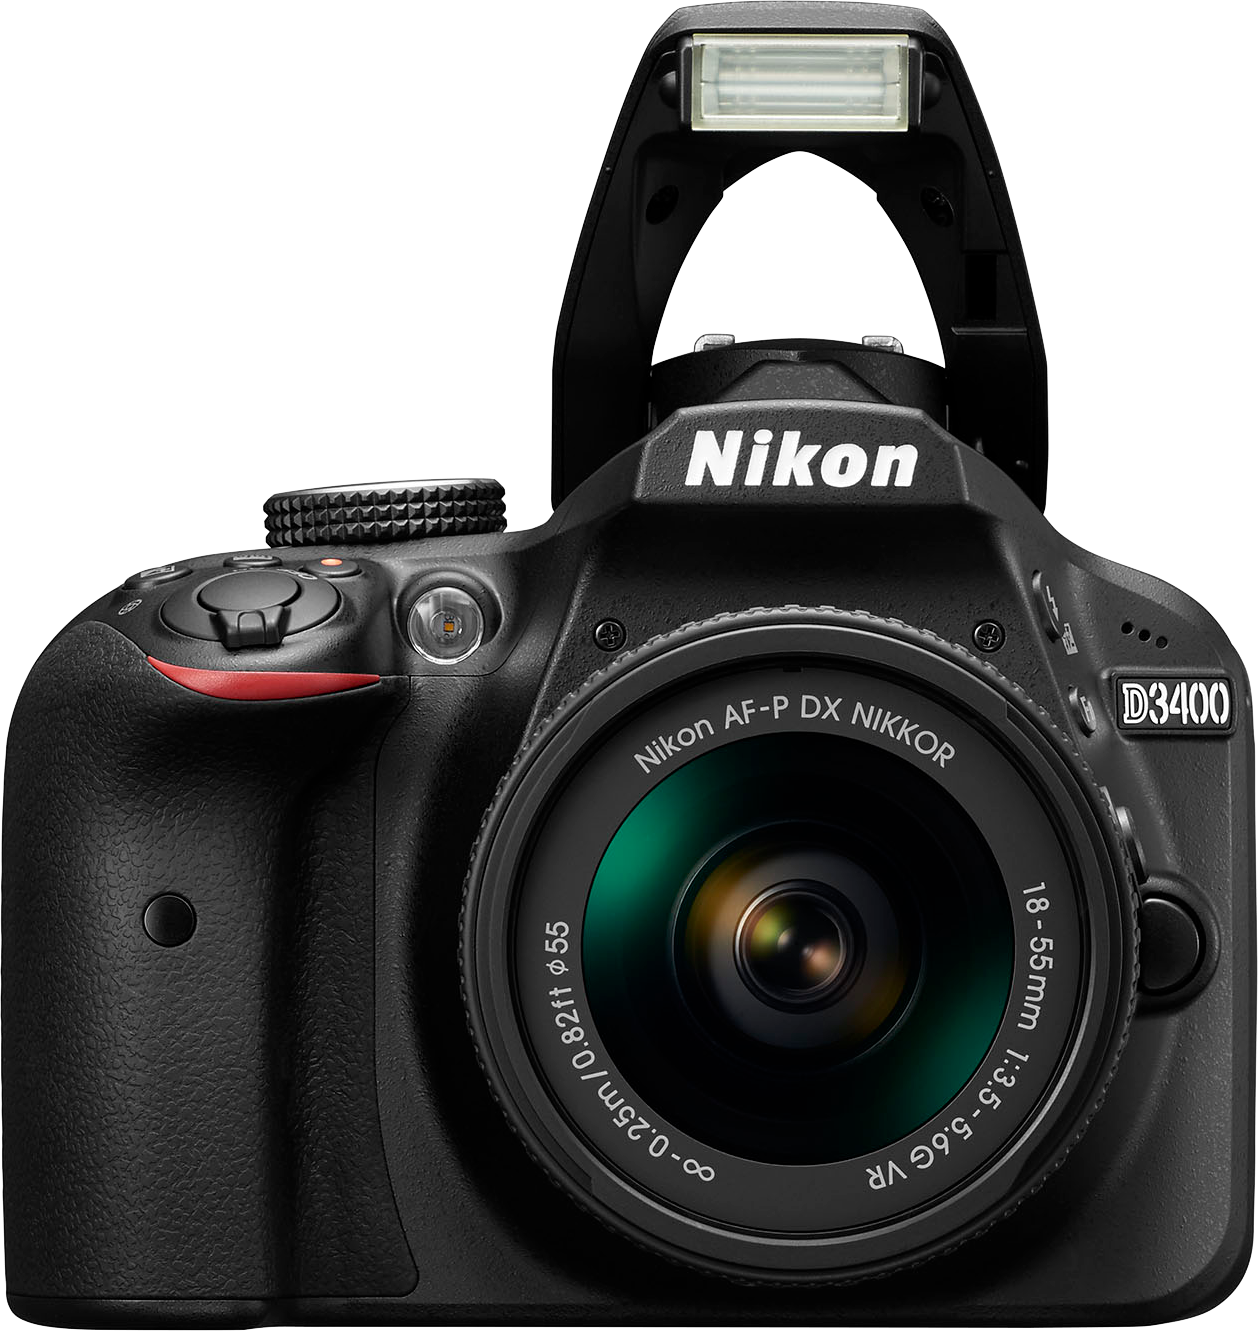 Nikon D3400: Digital Photography Review